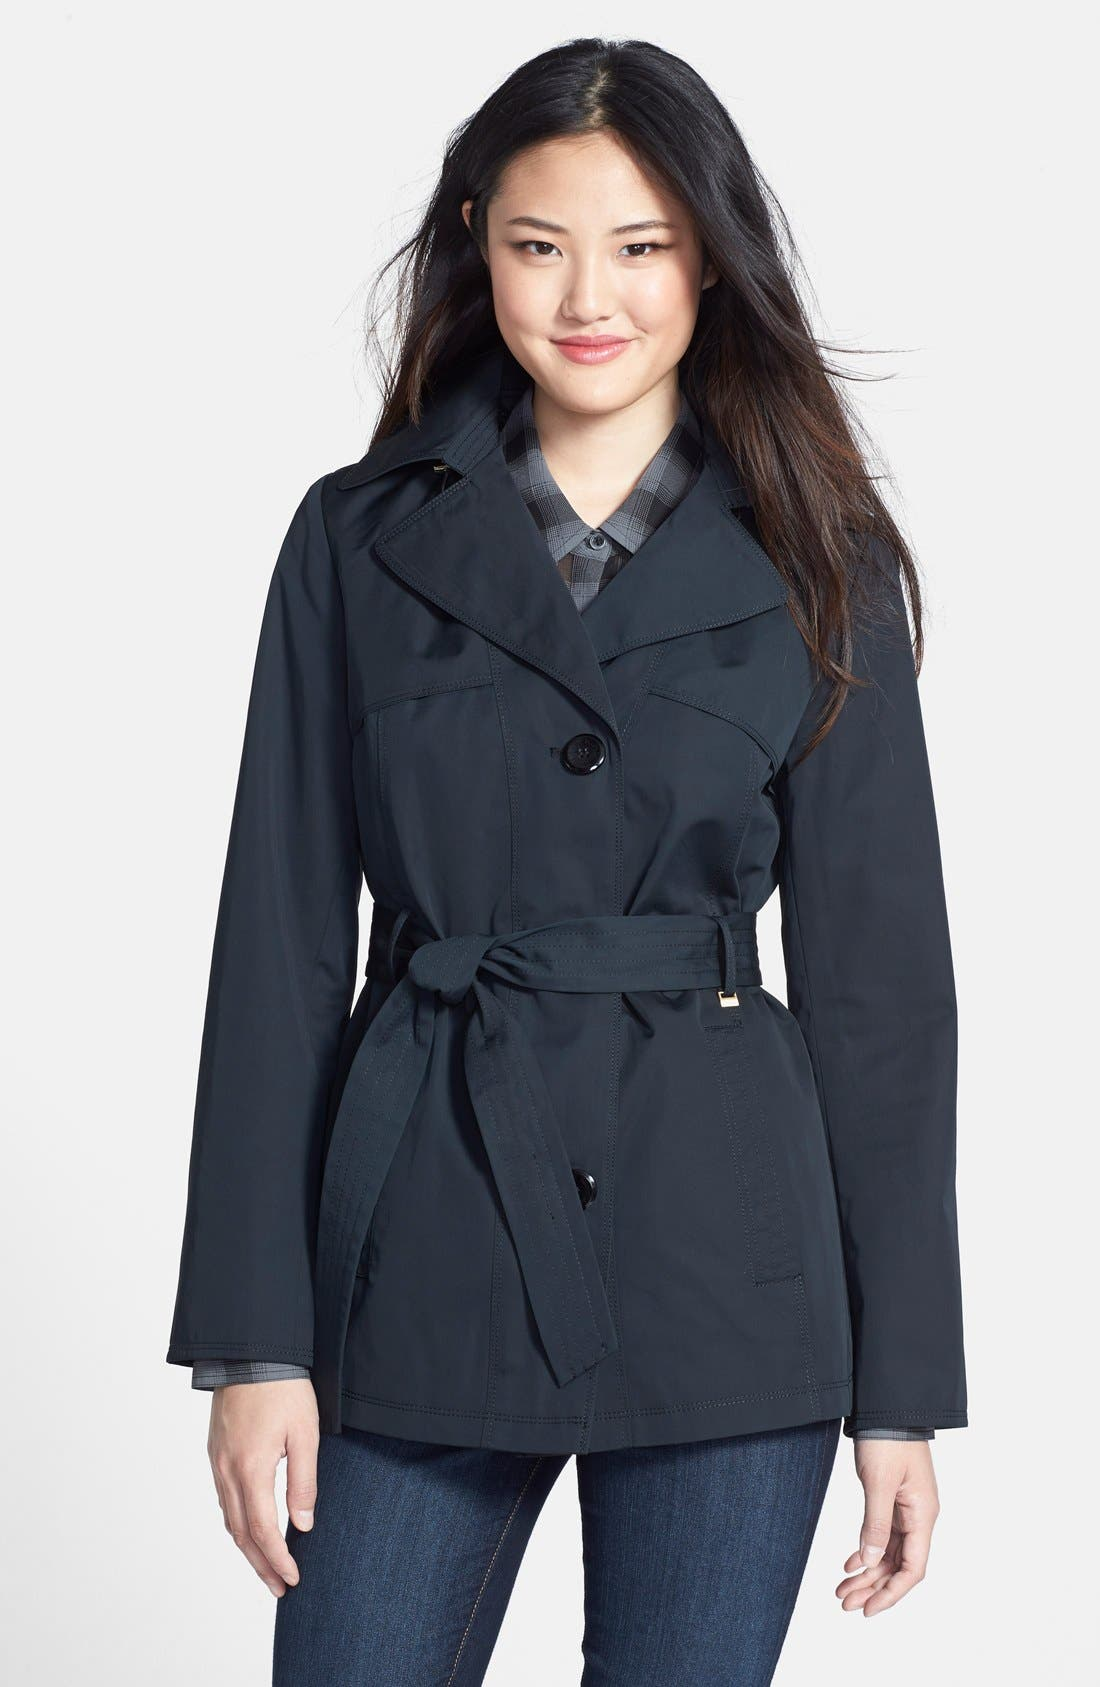 Alternate Image 1 Selected - Ellen Tracy Belted Mini Trench Coat with Detachable Hood (Regular & Petite) (Nordstrom Exclusive)